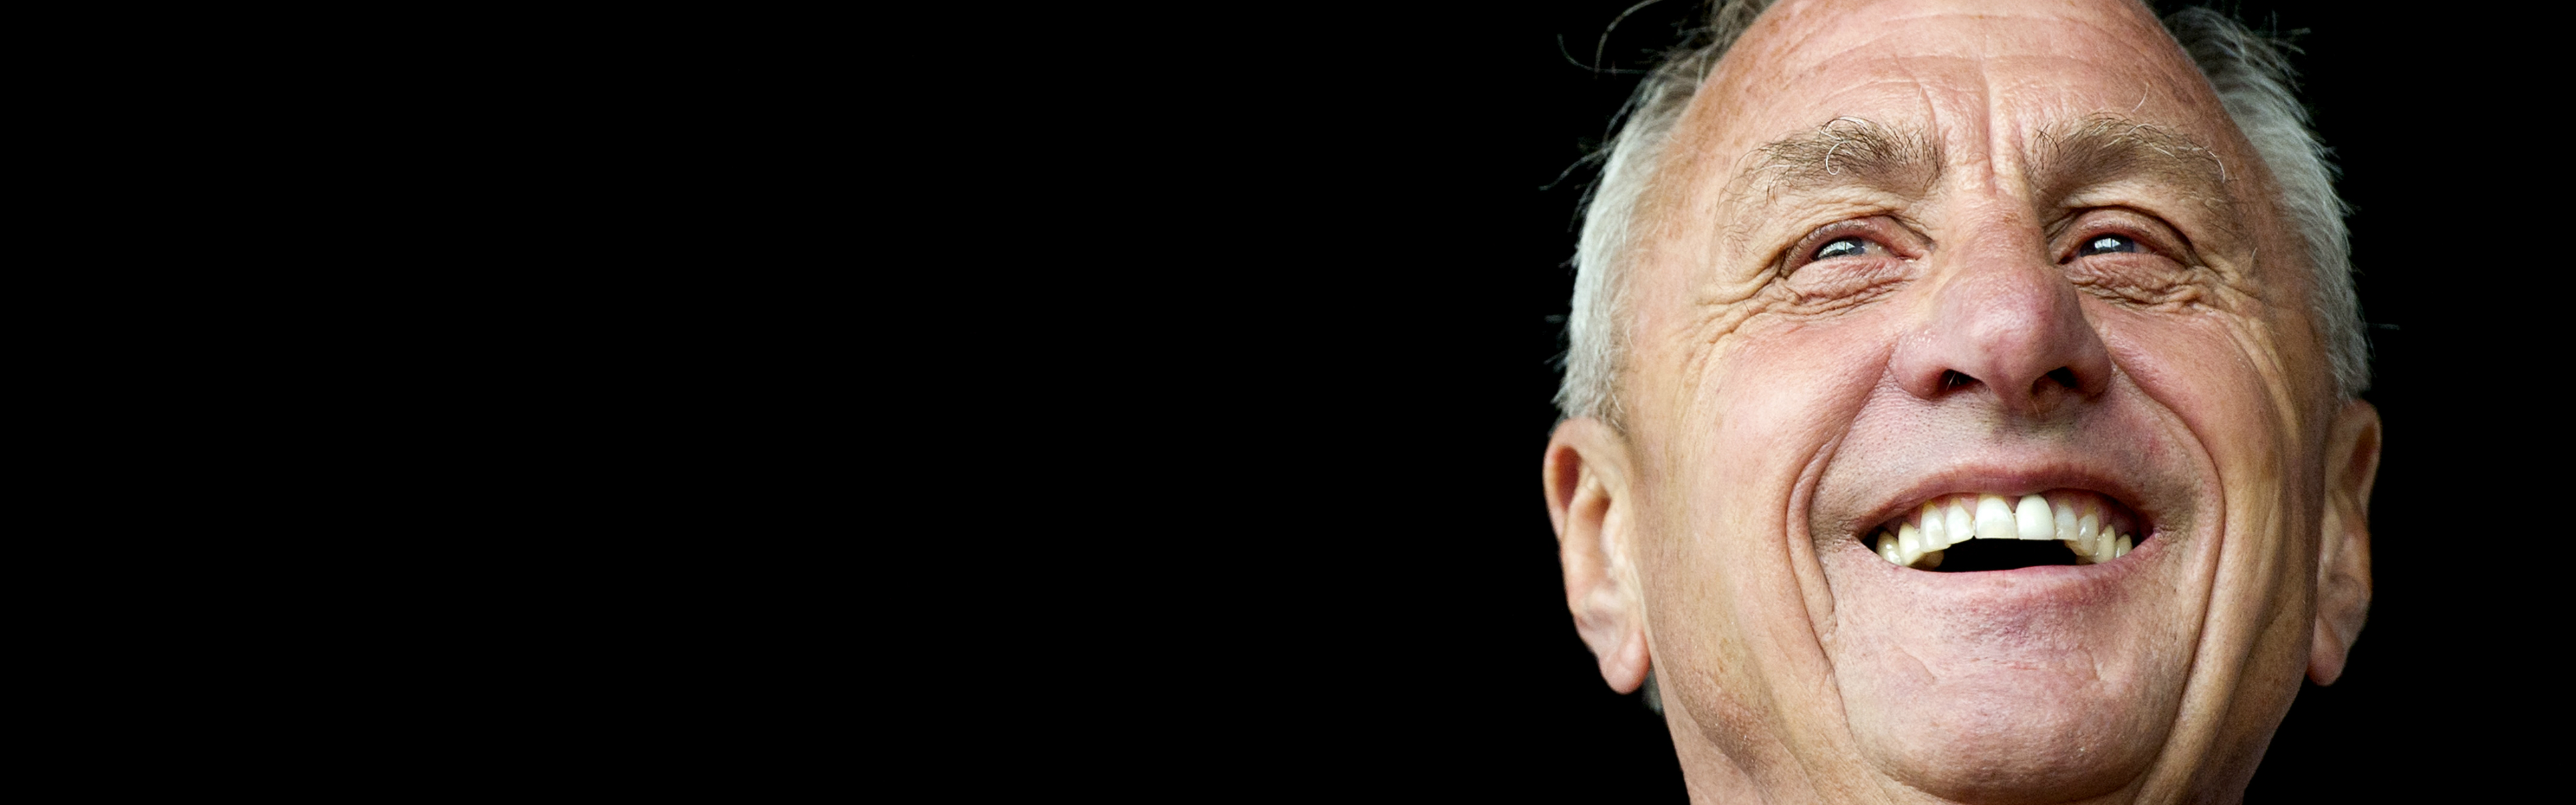 Cruijff header